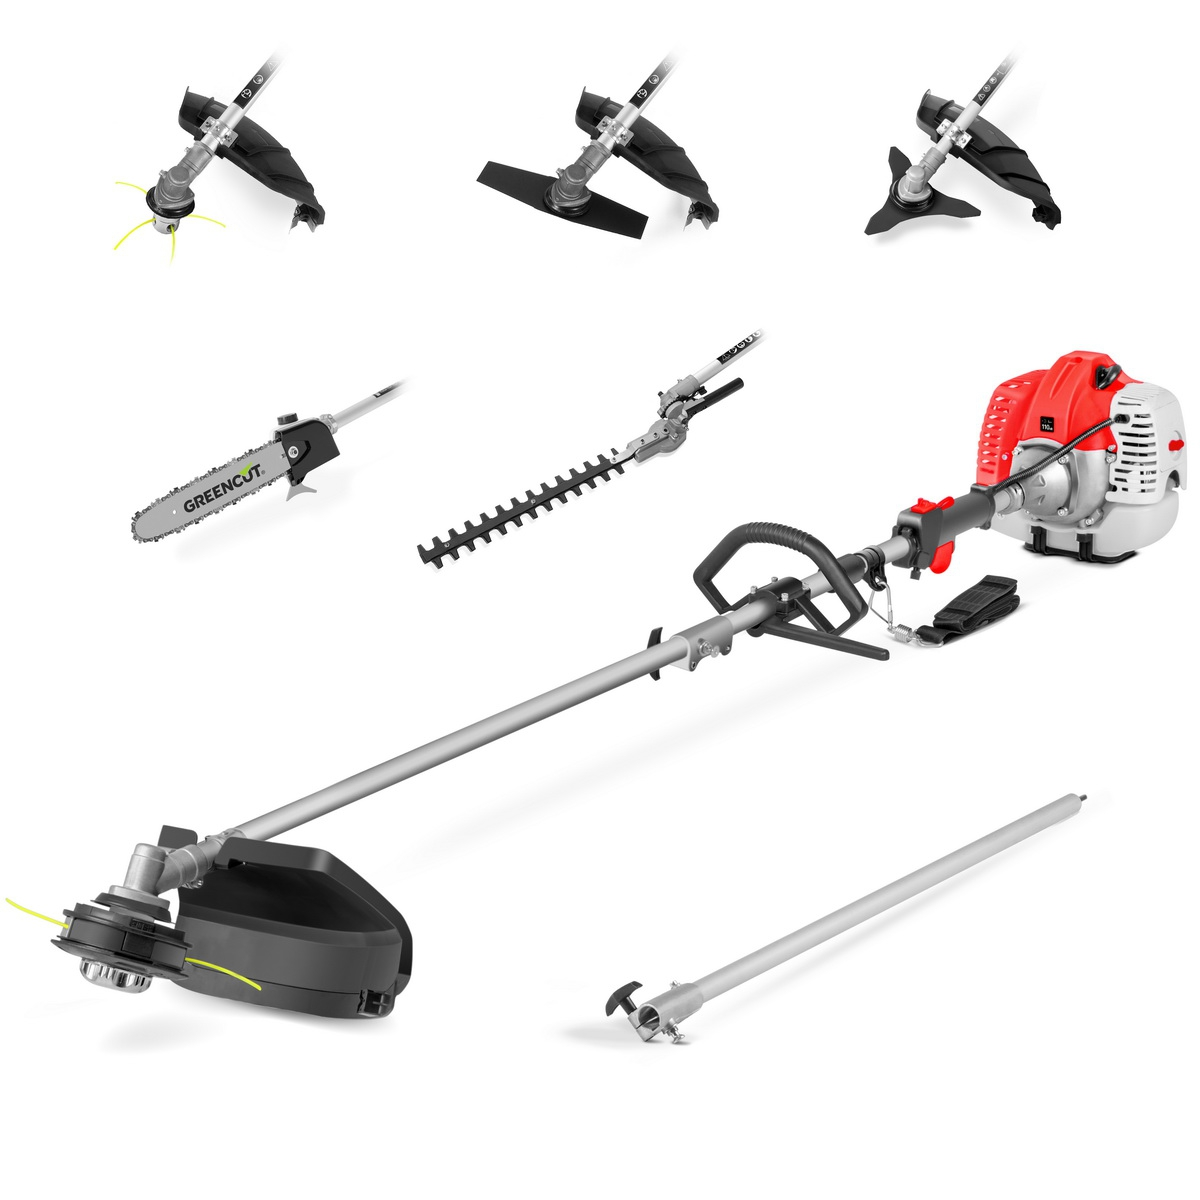 Tool Multifunction 6 In 1 GREENCUT, Gasoline 65cc, 6 Accessories, Brushcutter Function + Mower + Hedge